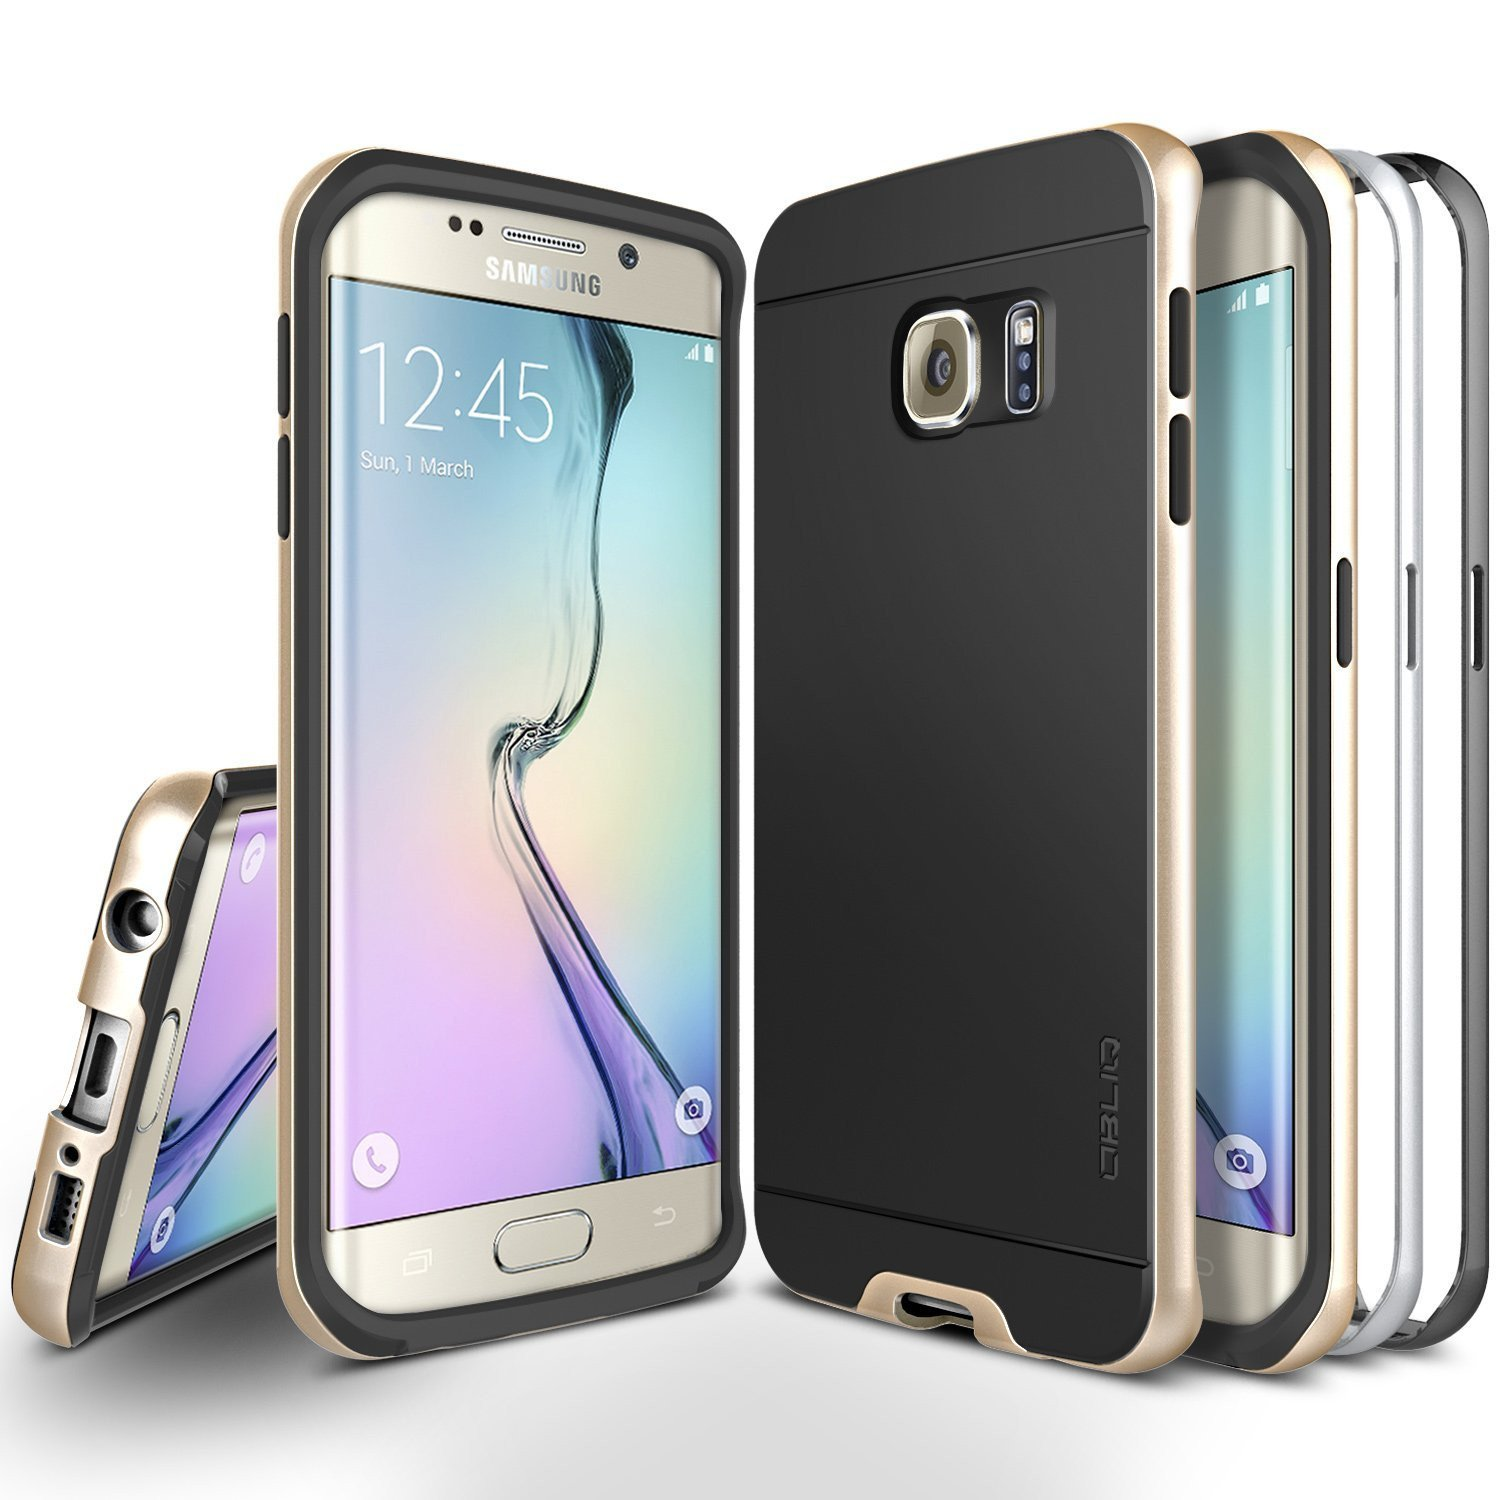 OBLIQ, Galaxy S6 Edge Case [Dual Poly Bumper][Gold,Silver,and Black] Dual Layer Bumper Slim Matted Back Anti Scratch Protective Cover for Galaxy S6 Edge